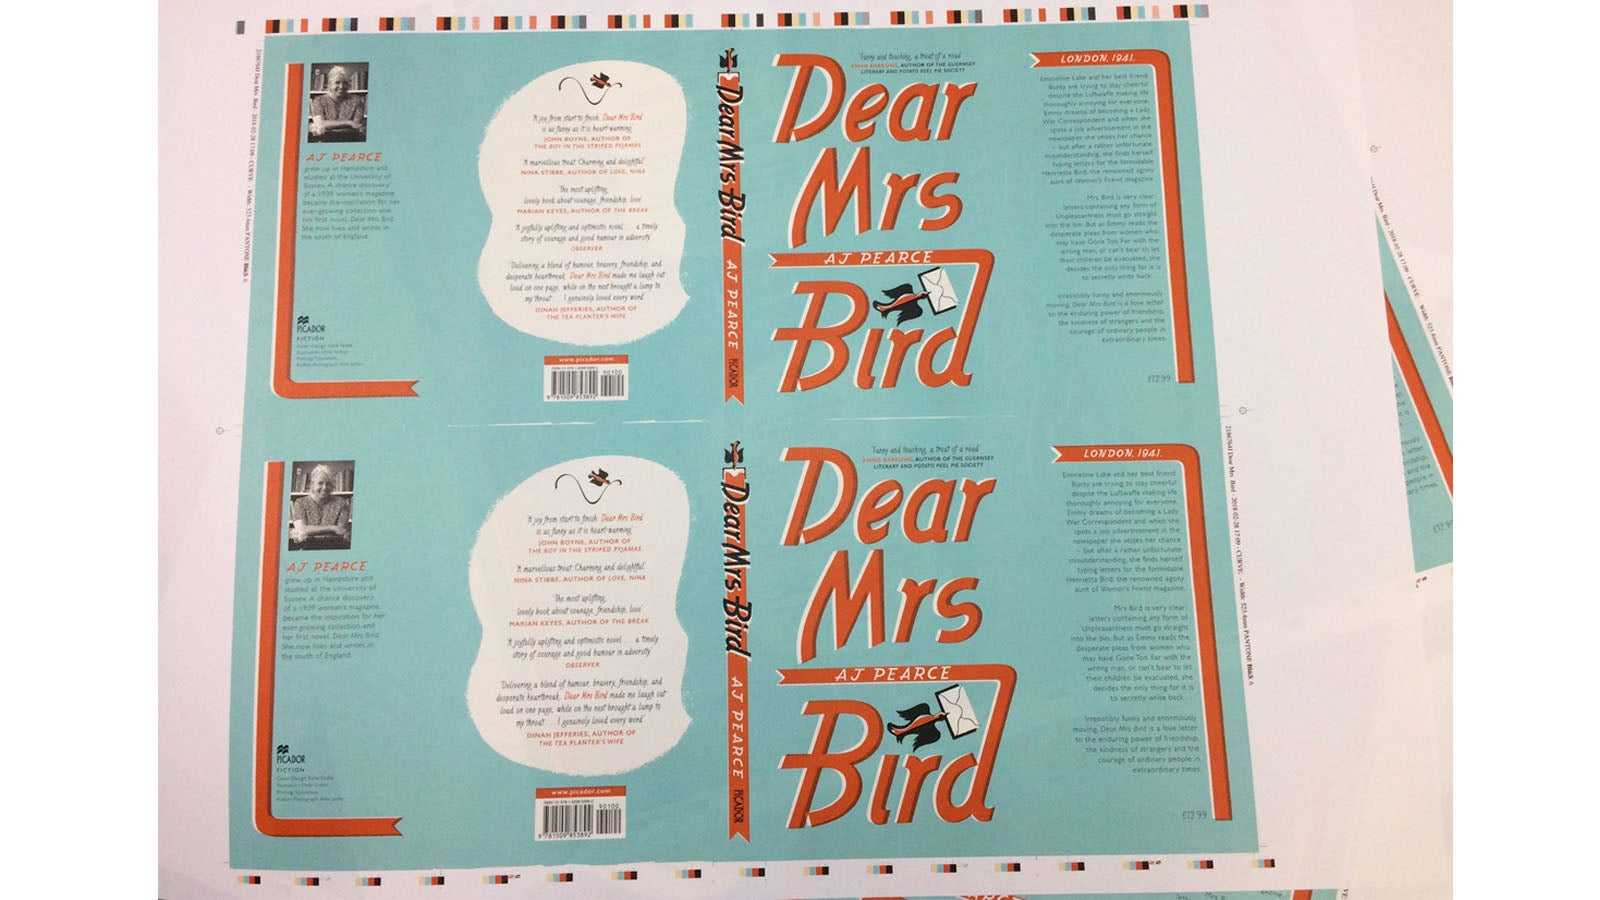 Finished copies of Dear Mrs Bird's book jacket fresh out of the printer.